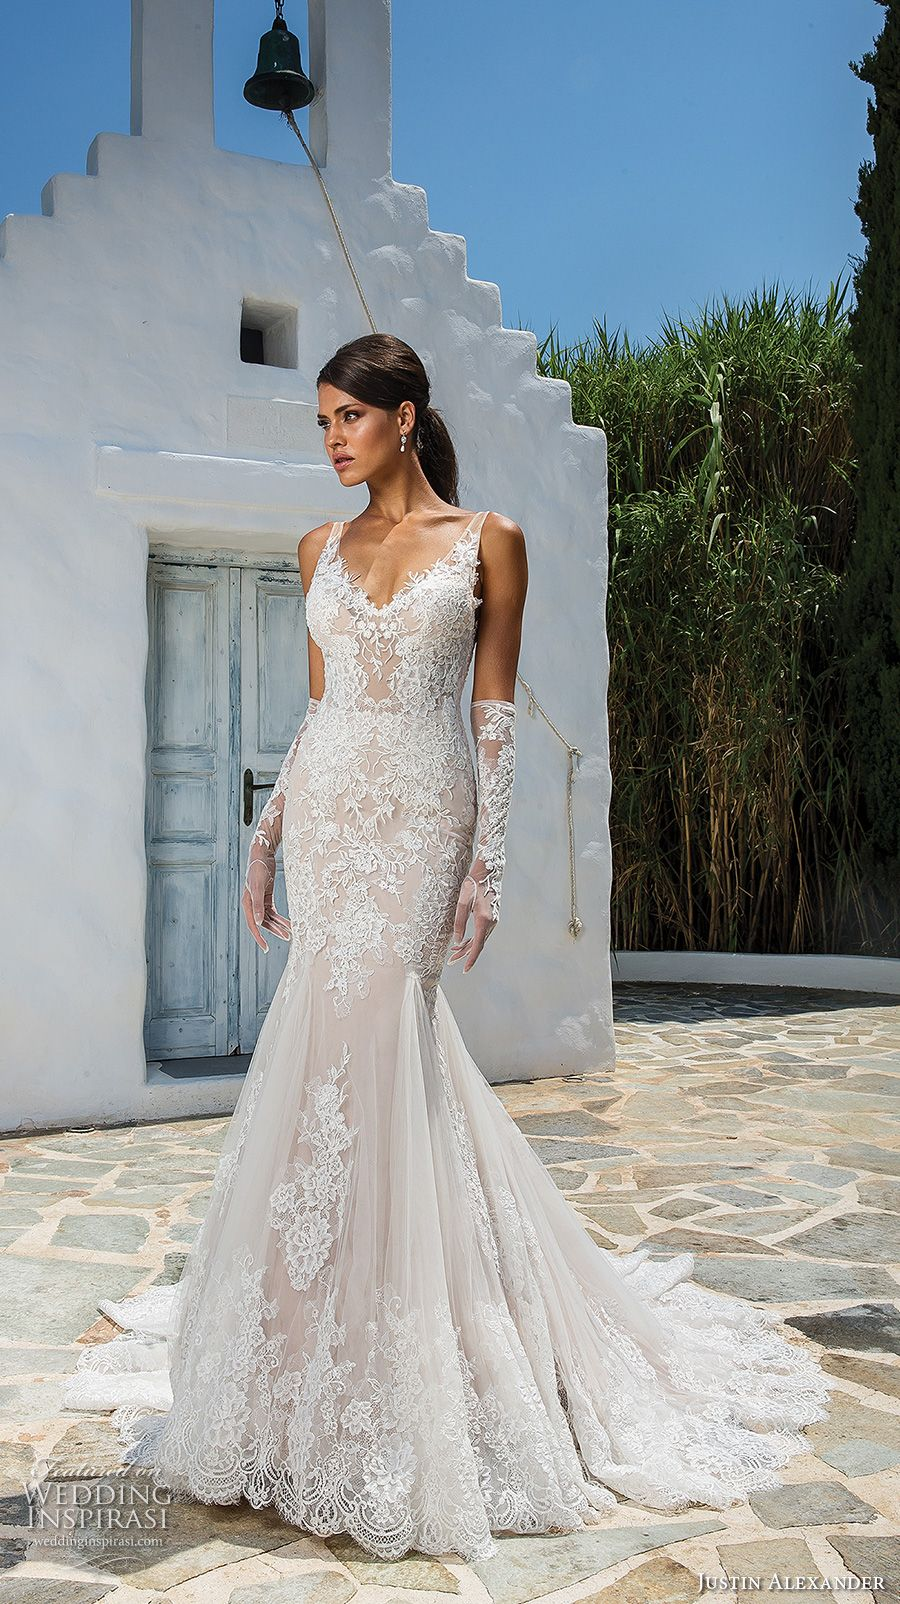 Lace wedding dress with back out january 2019 Justin Alexander  Wedding Dresses  Wedding Dresses  Pinterest